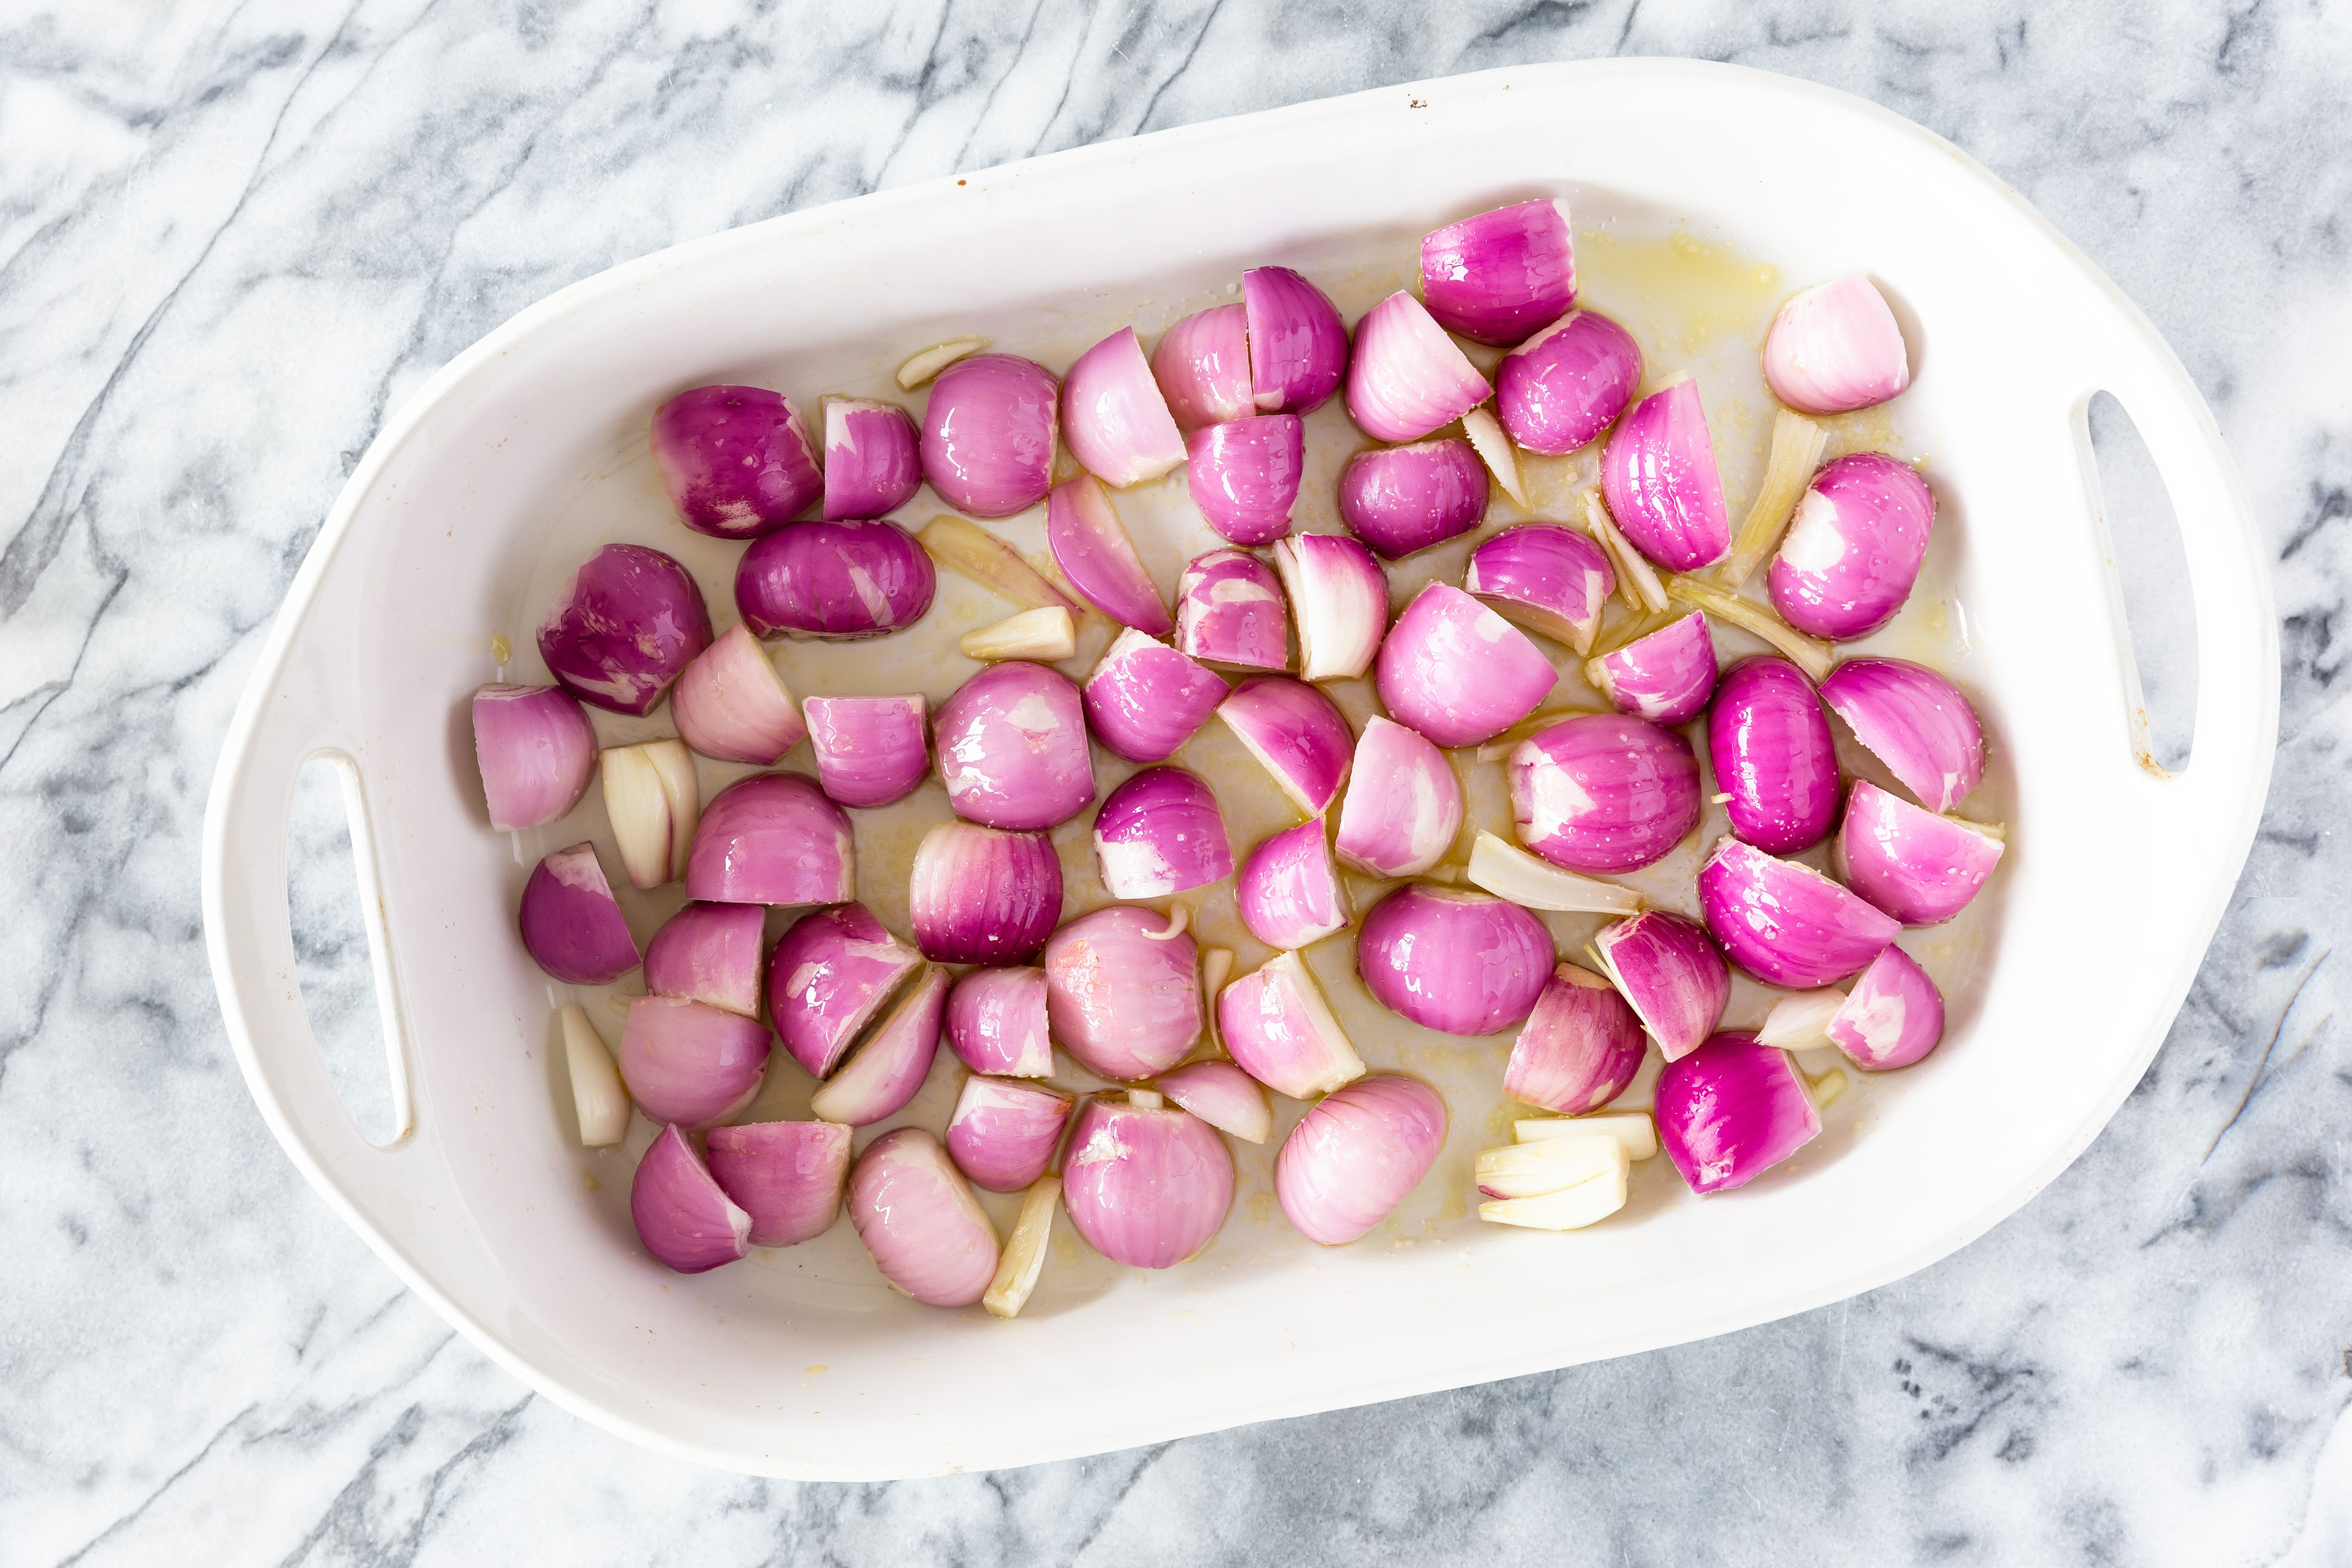 Onions in a baking dish